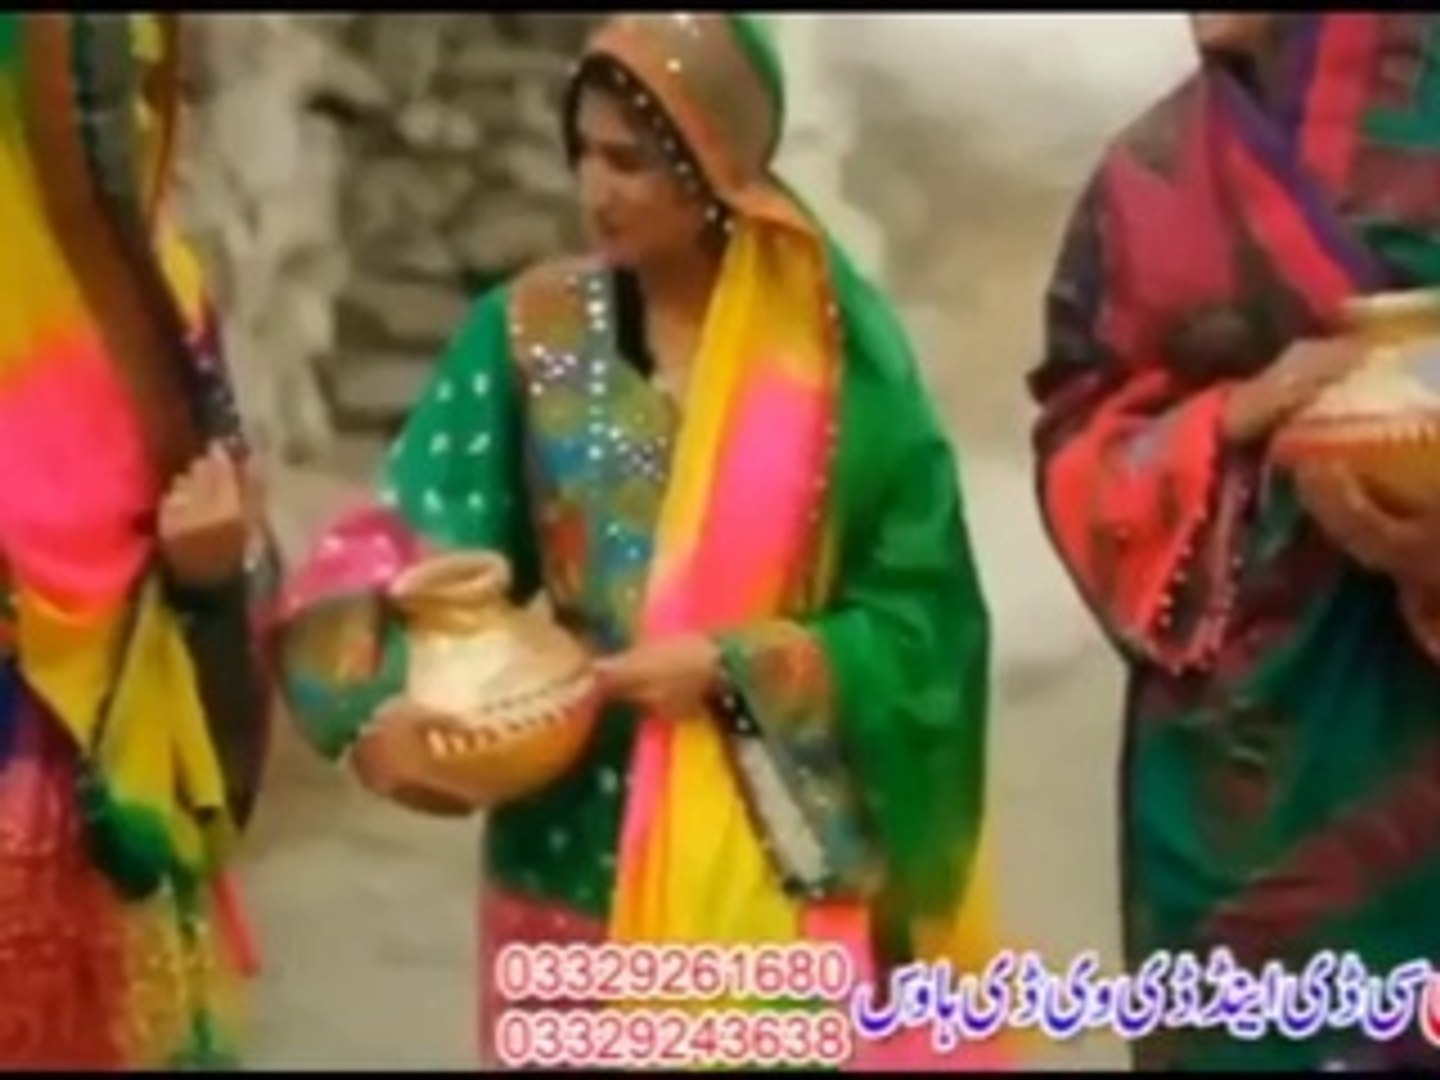 Pa Khoob - Brishna Amil 2015 Song - Pashto New Songs 2015 - Pashto Songs 2015